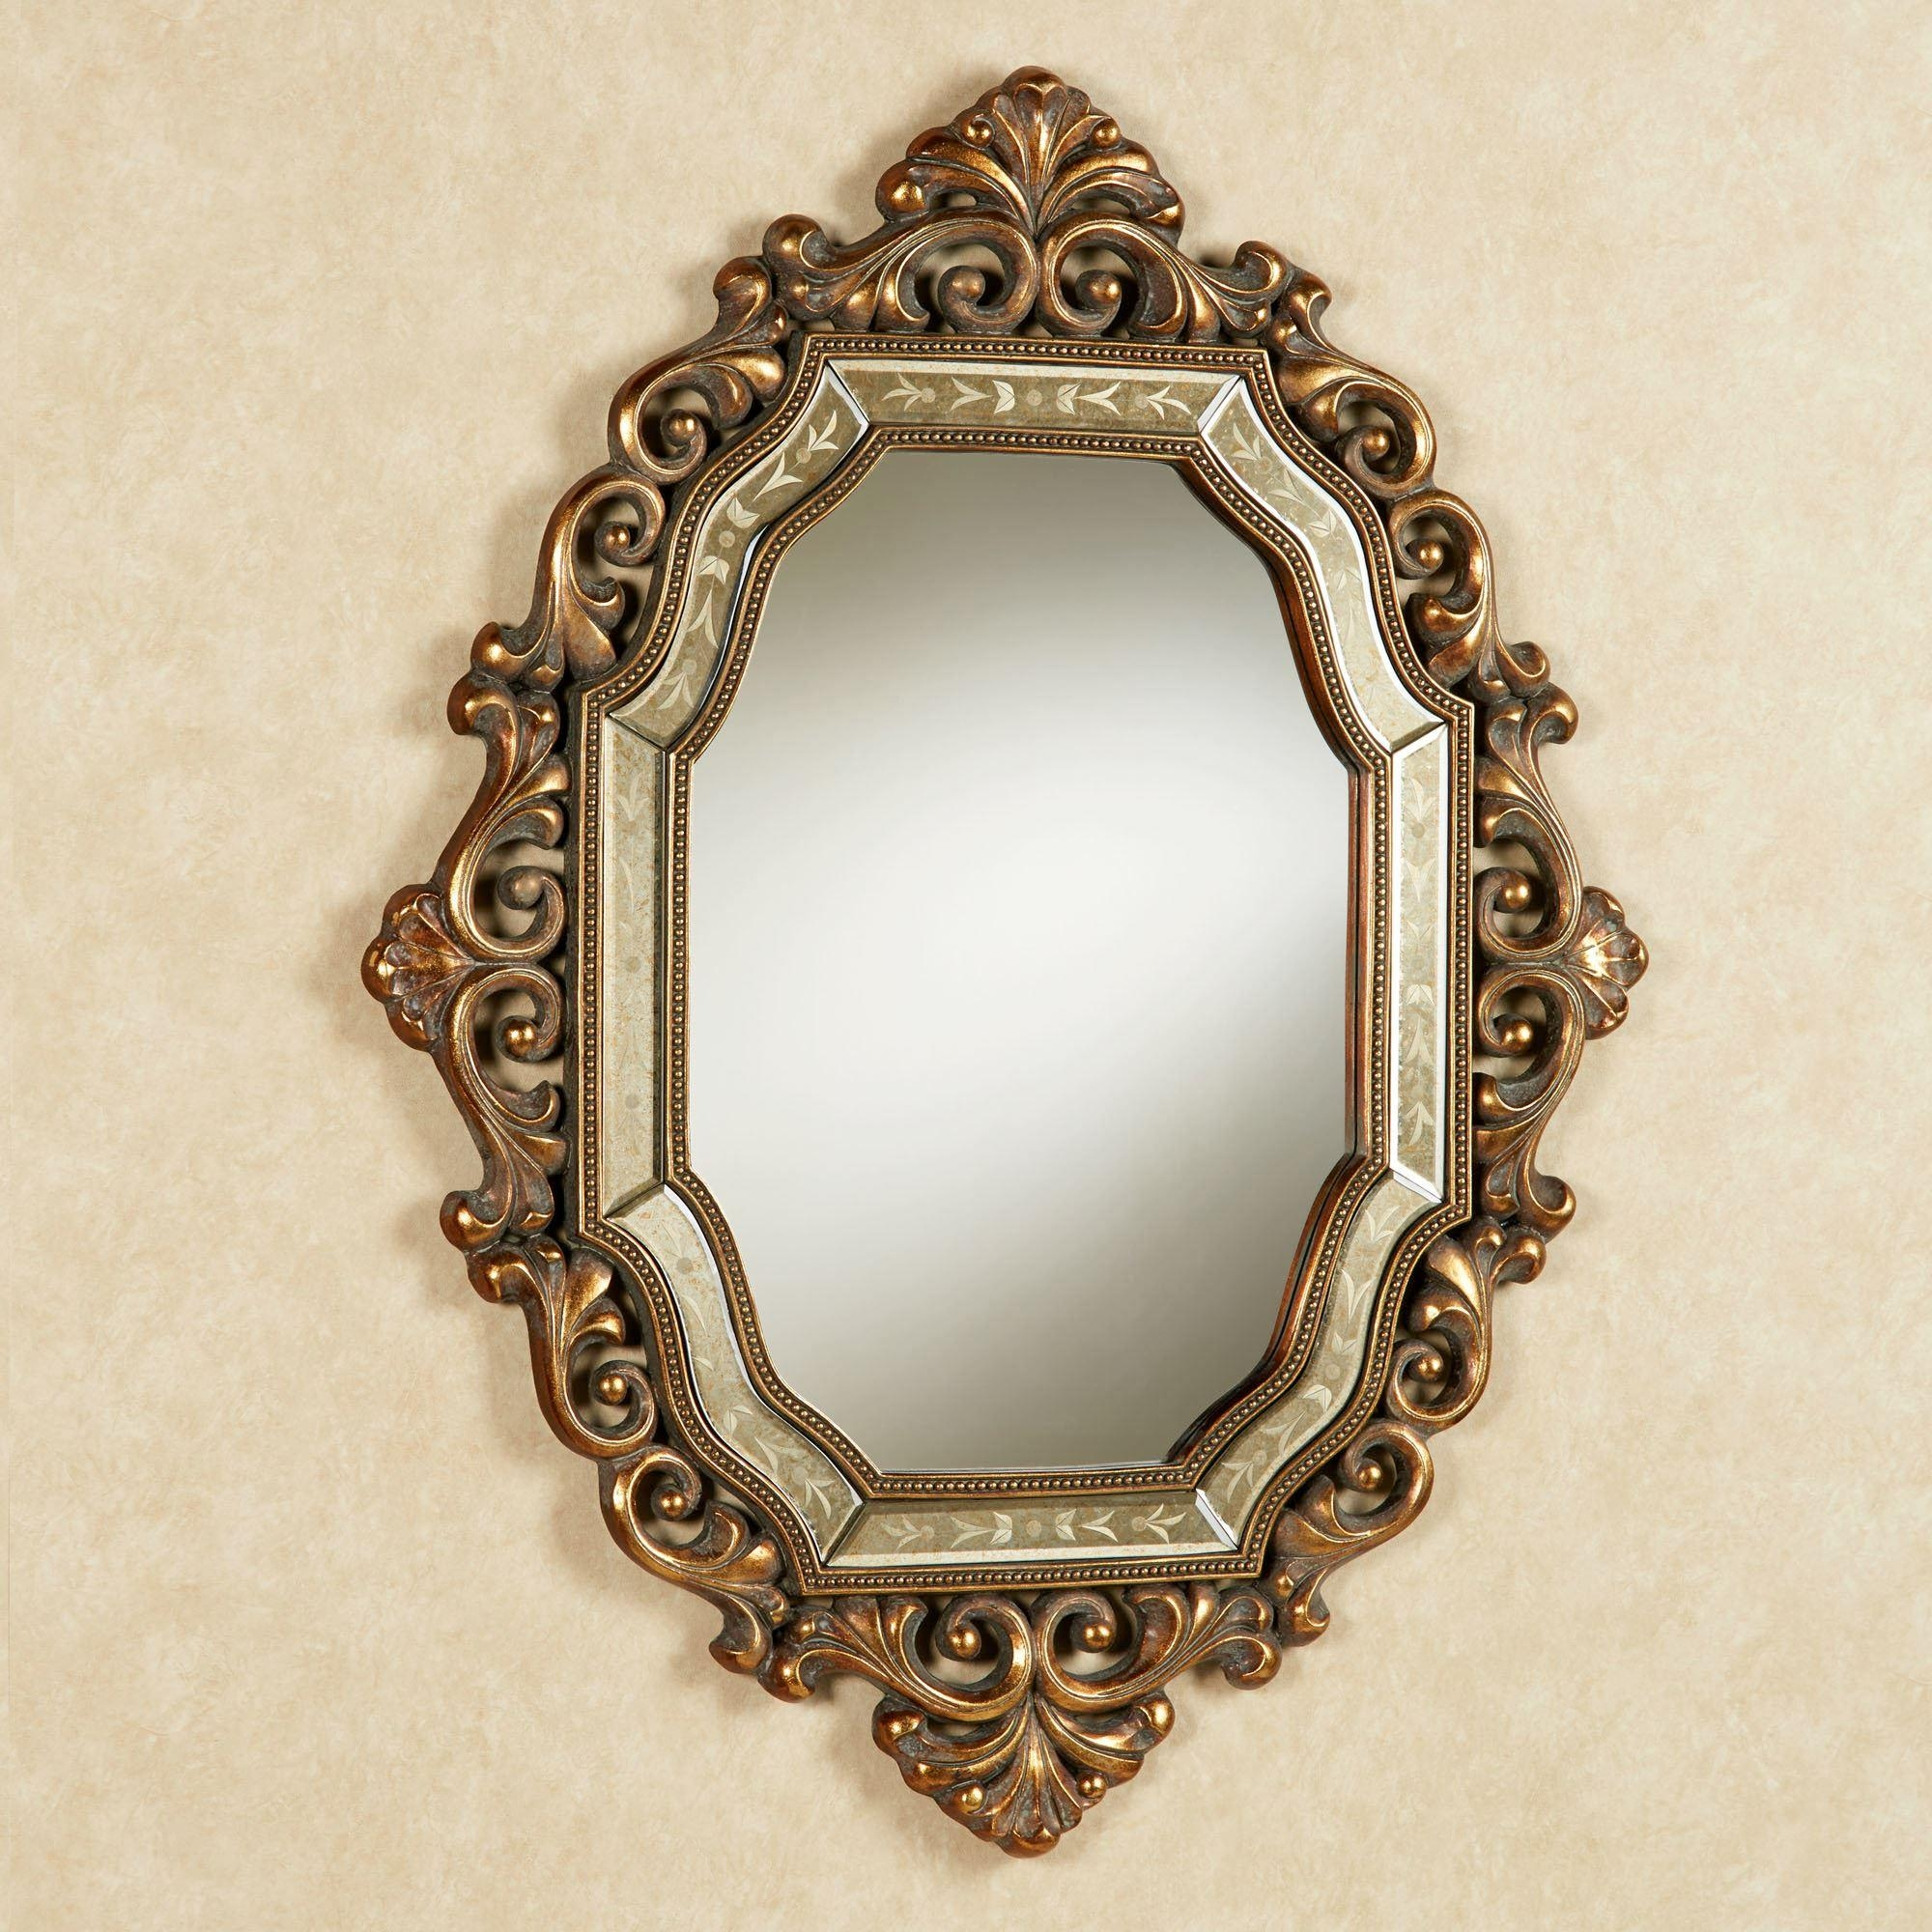 Verena Old World Wall Mirror For Antique Wall Mirror (Image 17 of 20)